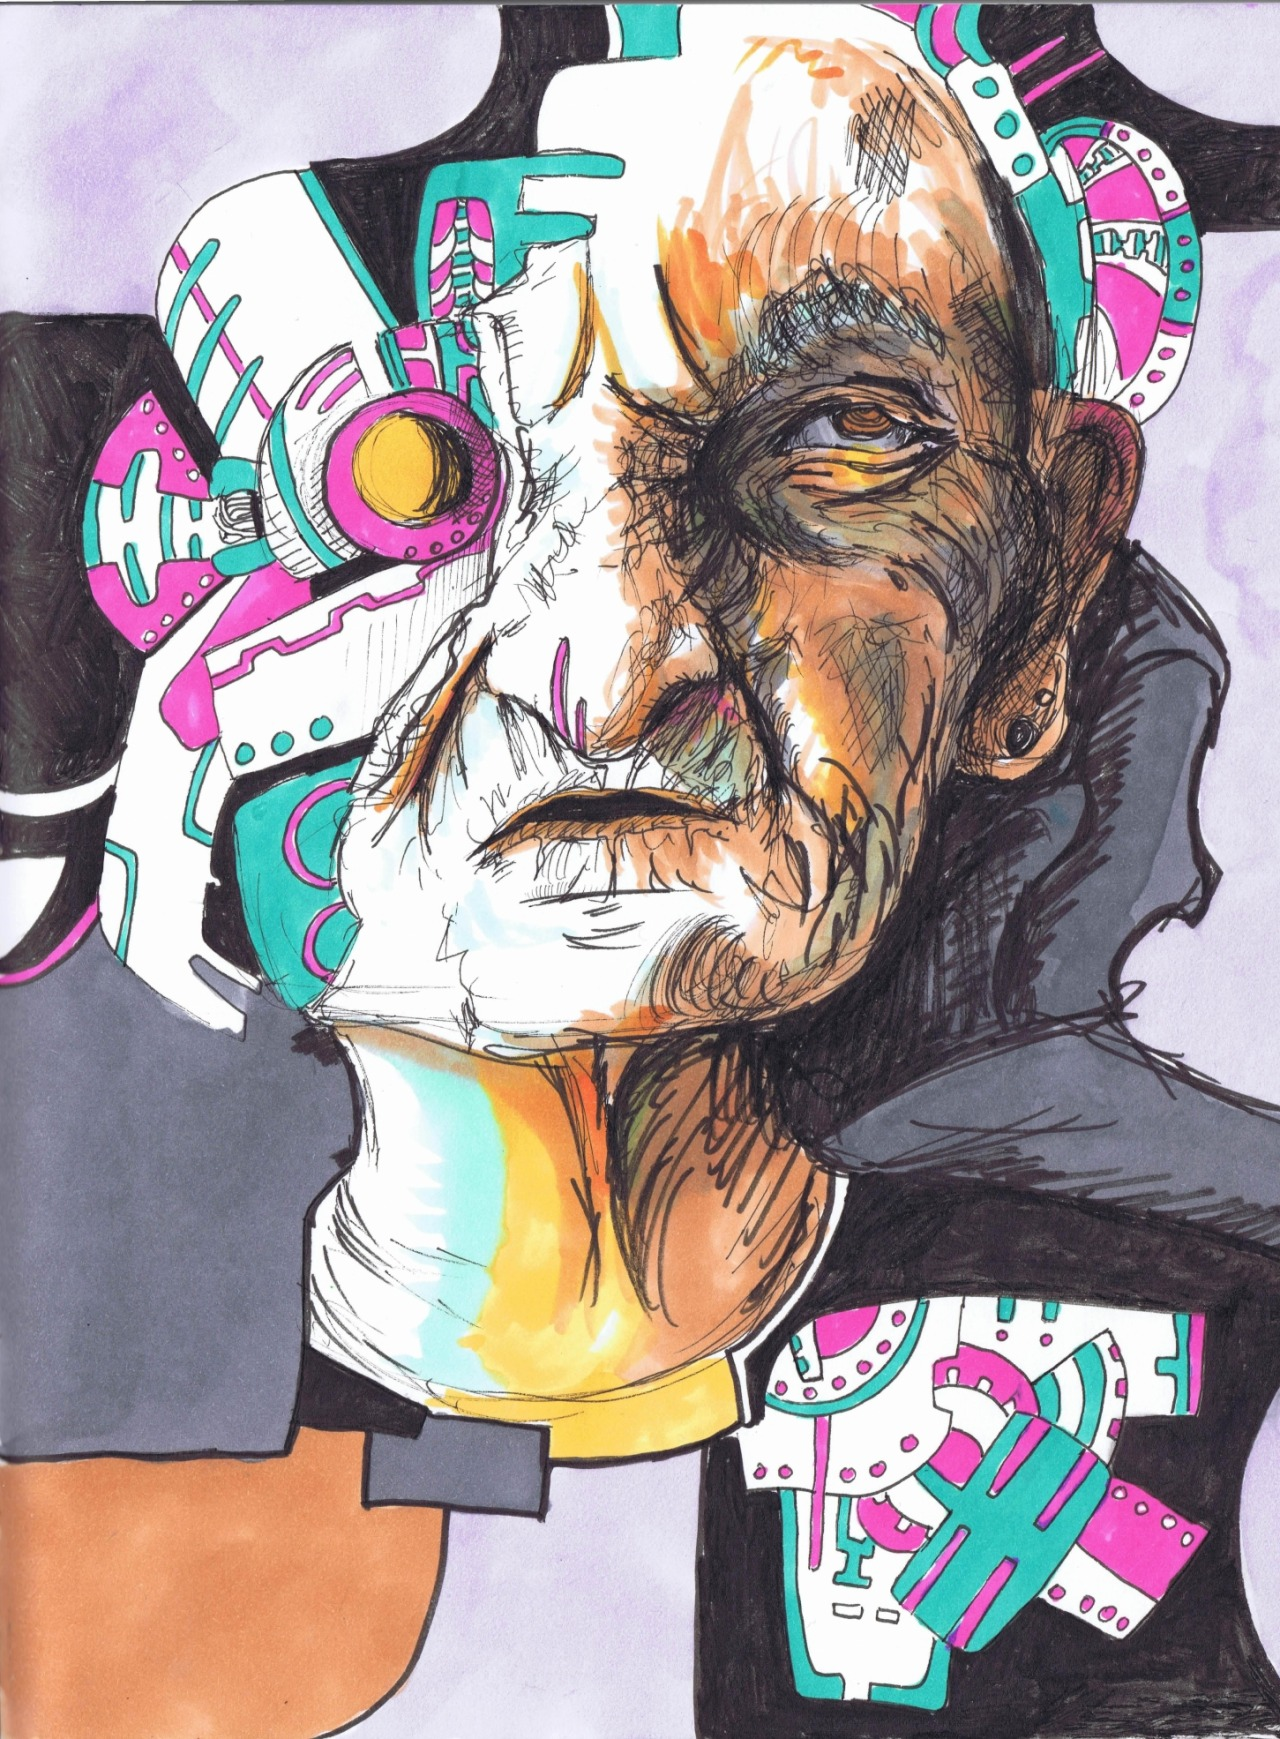 Old cyborgs are best cyborgs.